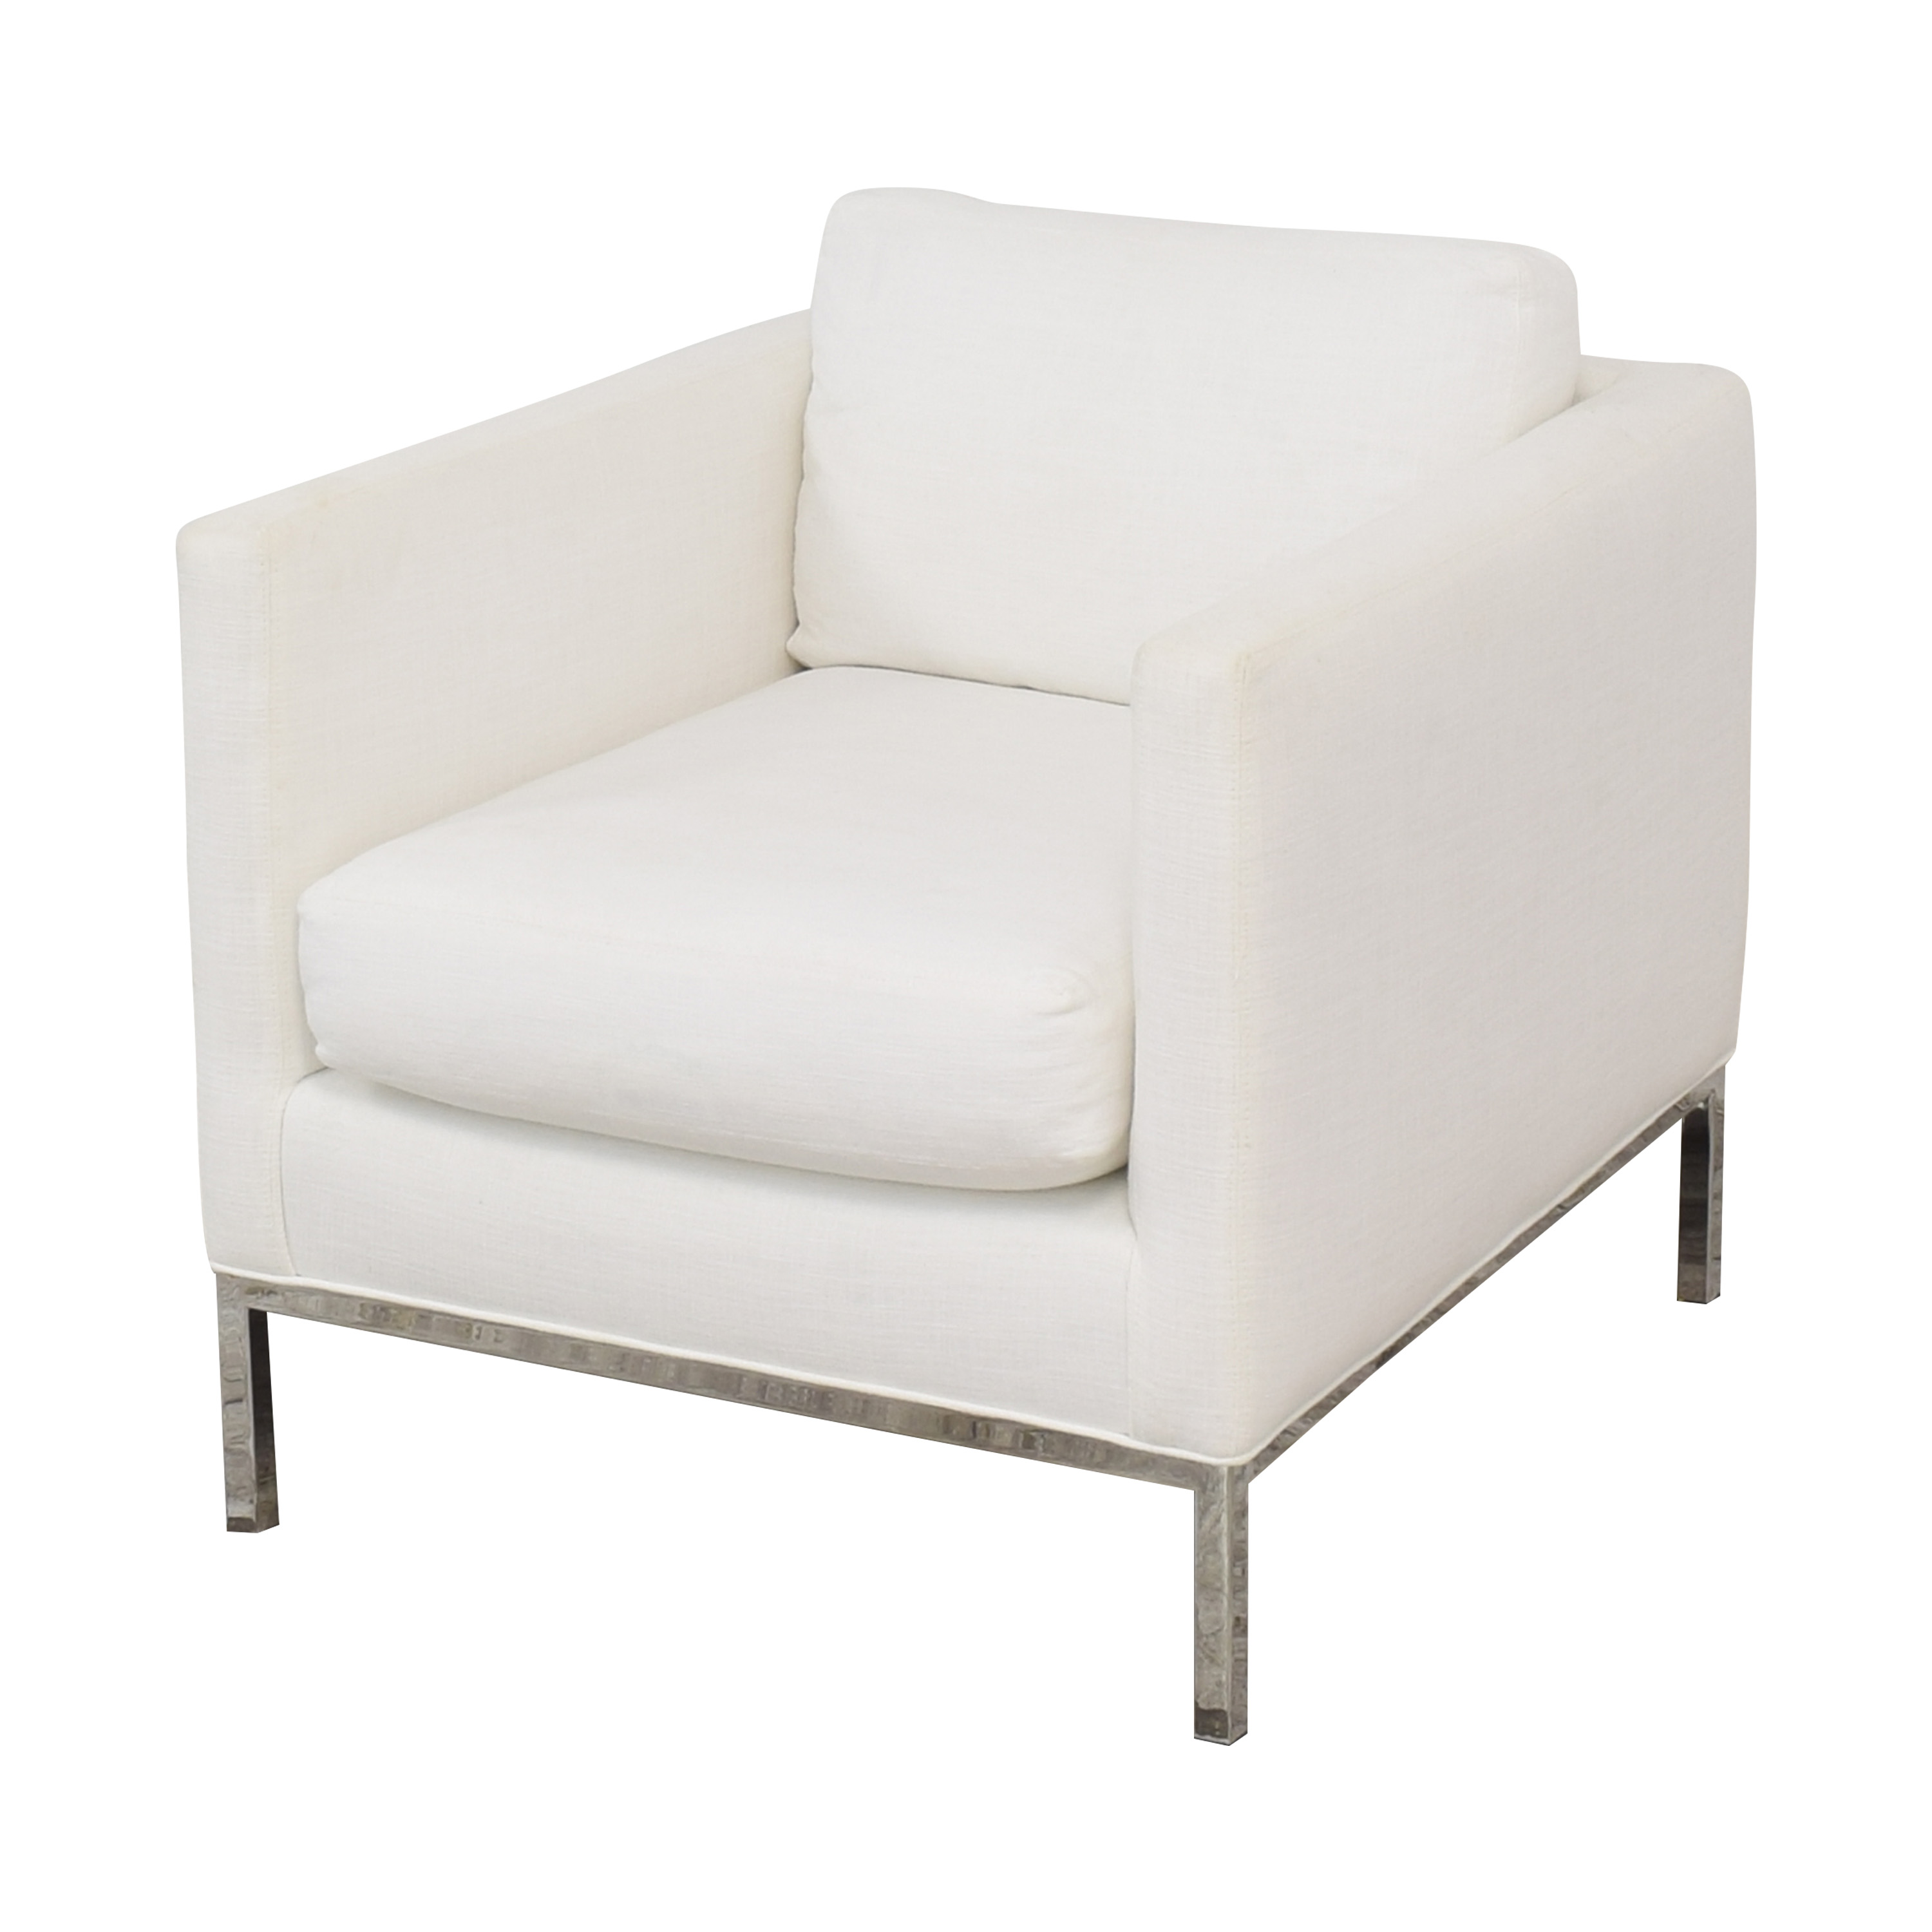 Lee Industries Lee Industries Modern Club Chair White